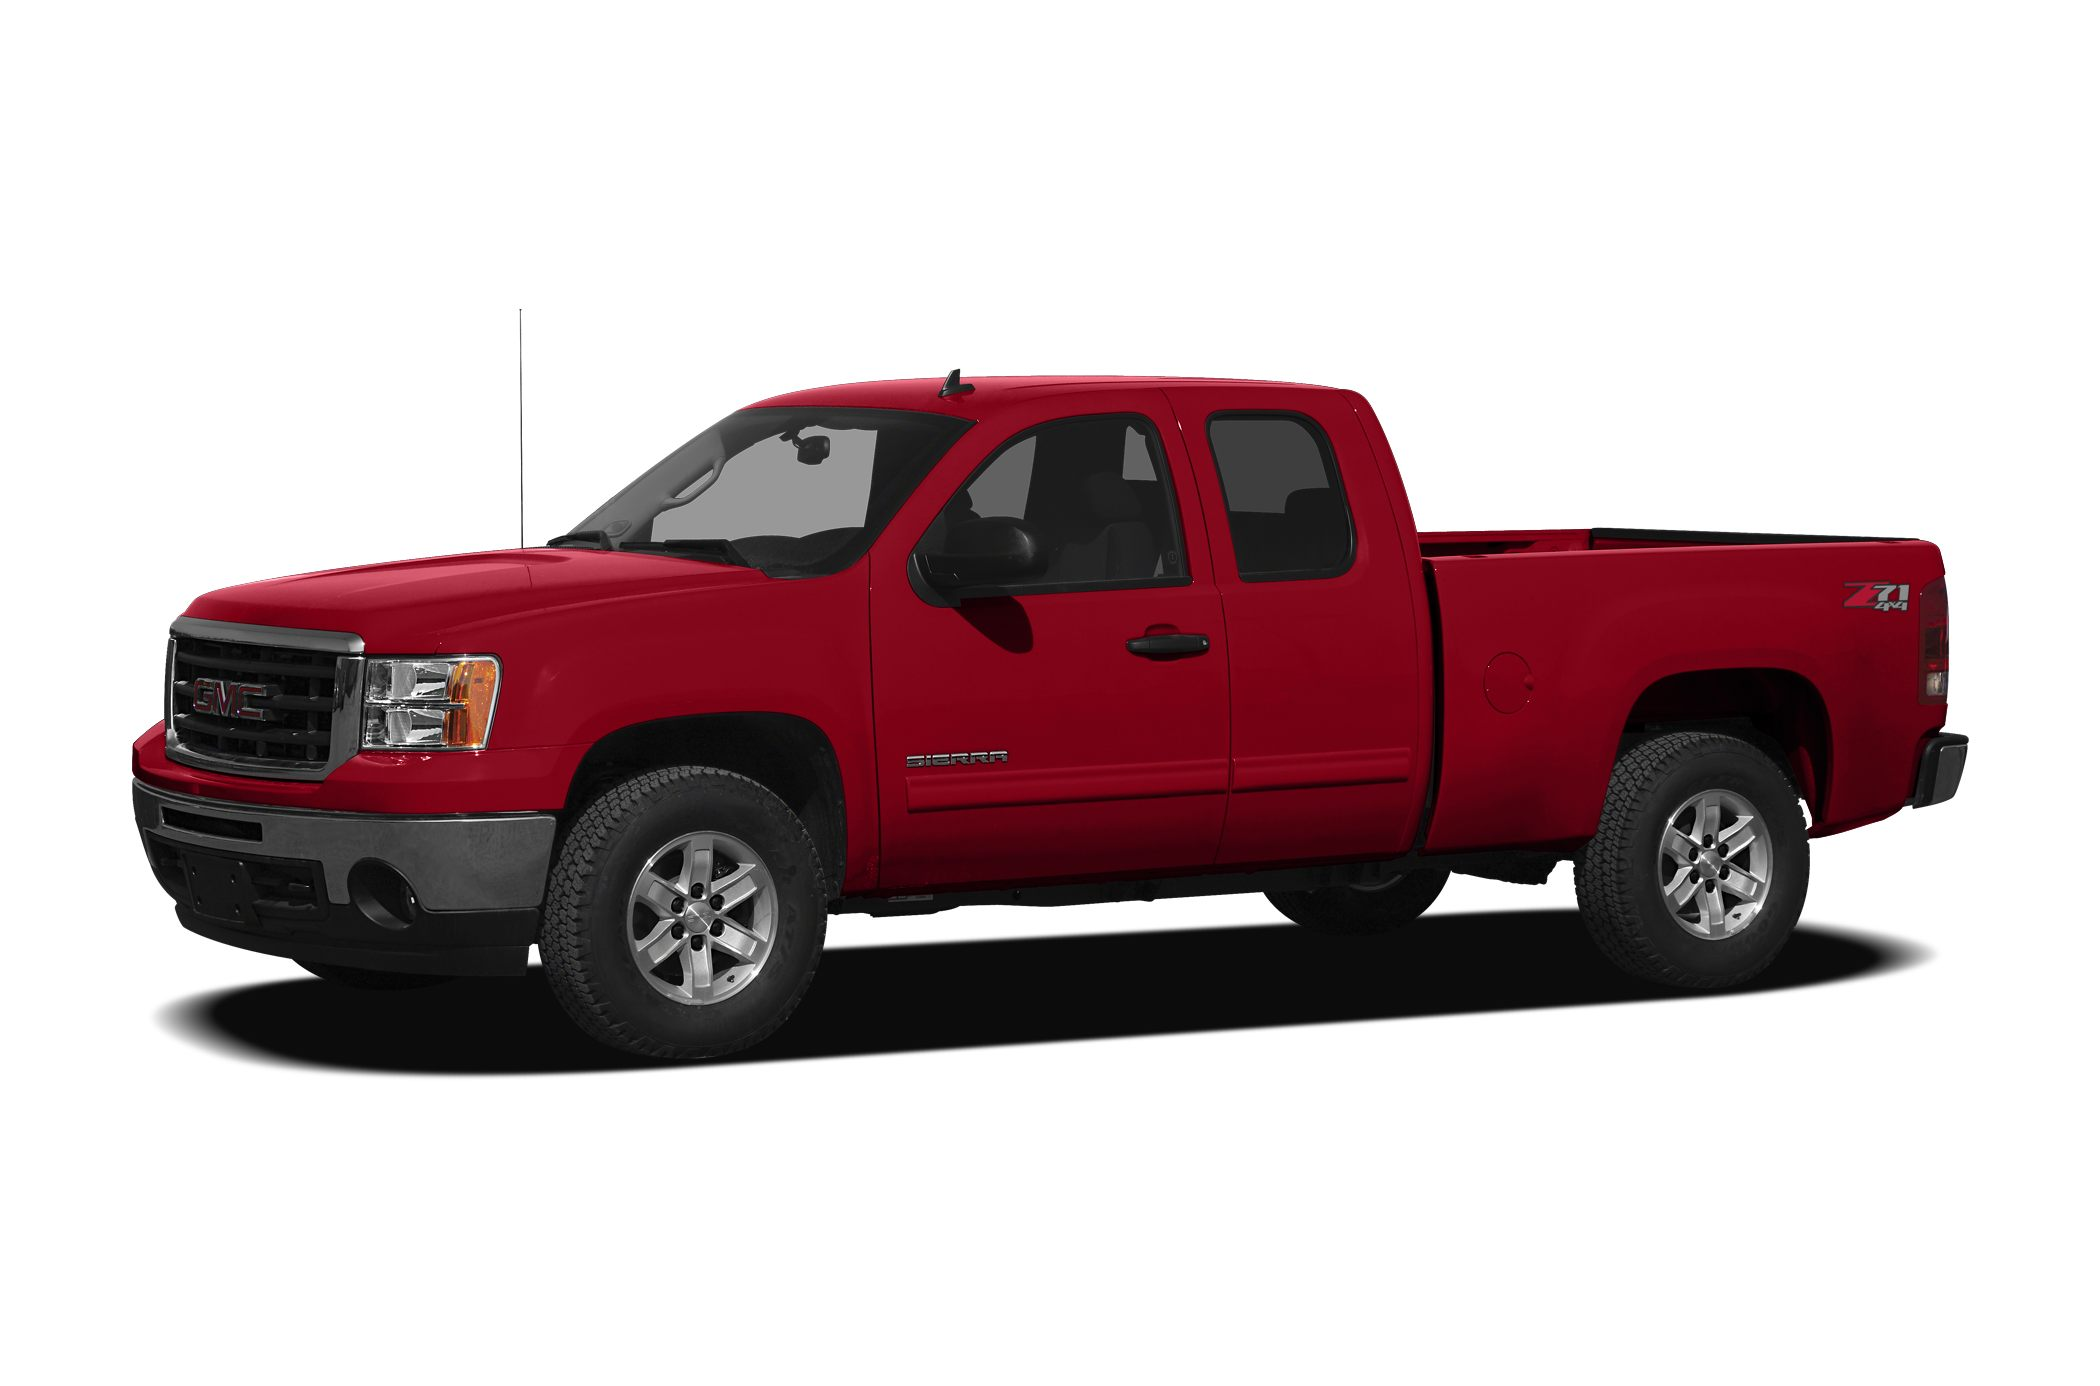 2012 GMC Sierra 1500 SLE ITS OUR 50TH ANNIVERSARY HERE AT MARTYS AND TO CELEBRATE WERE OFFERING T